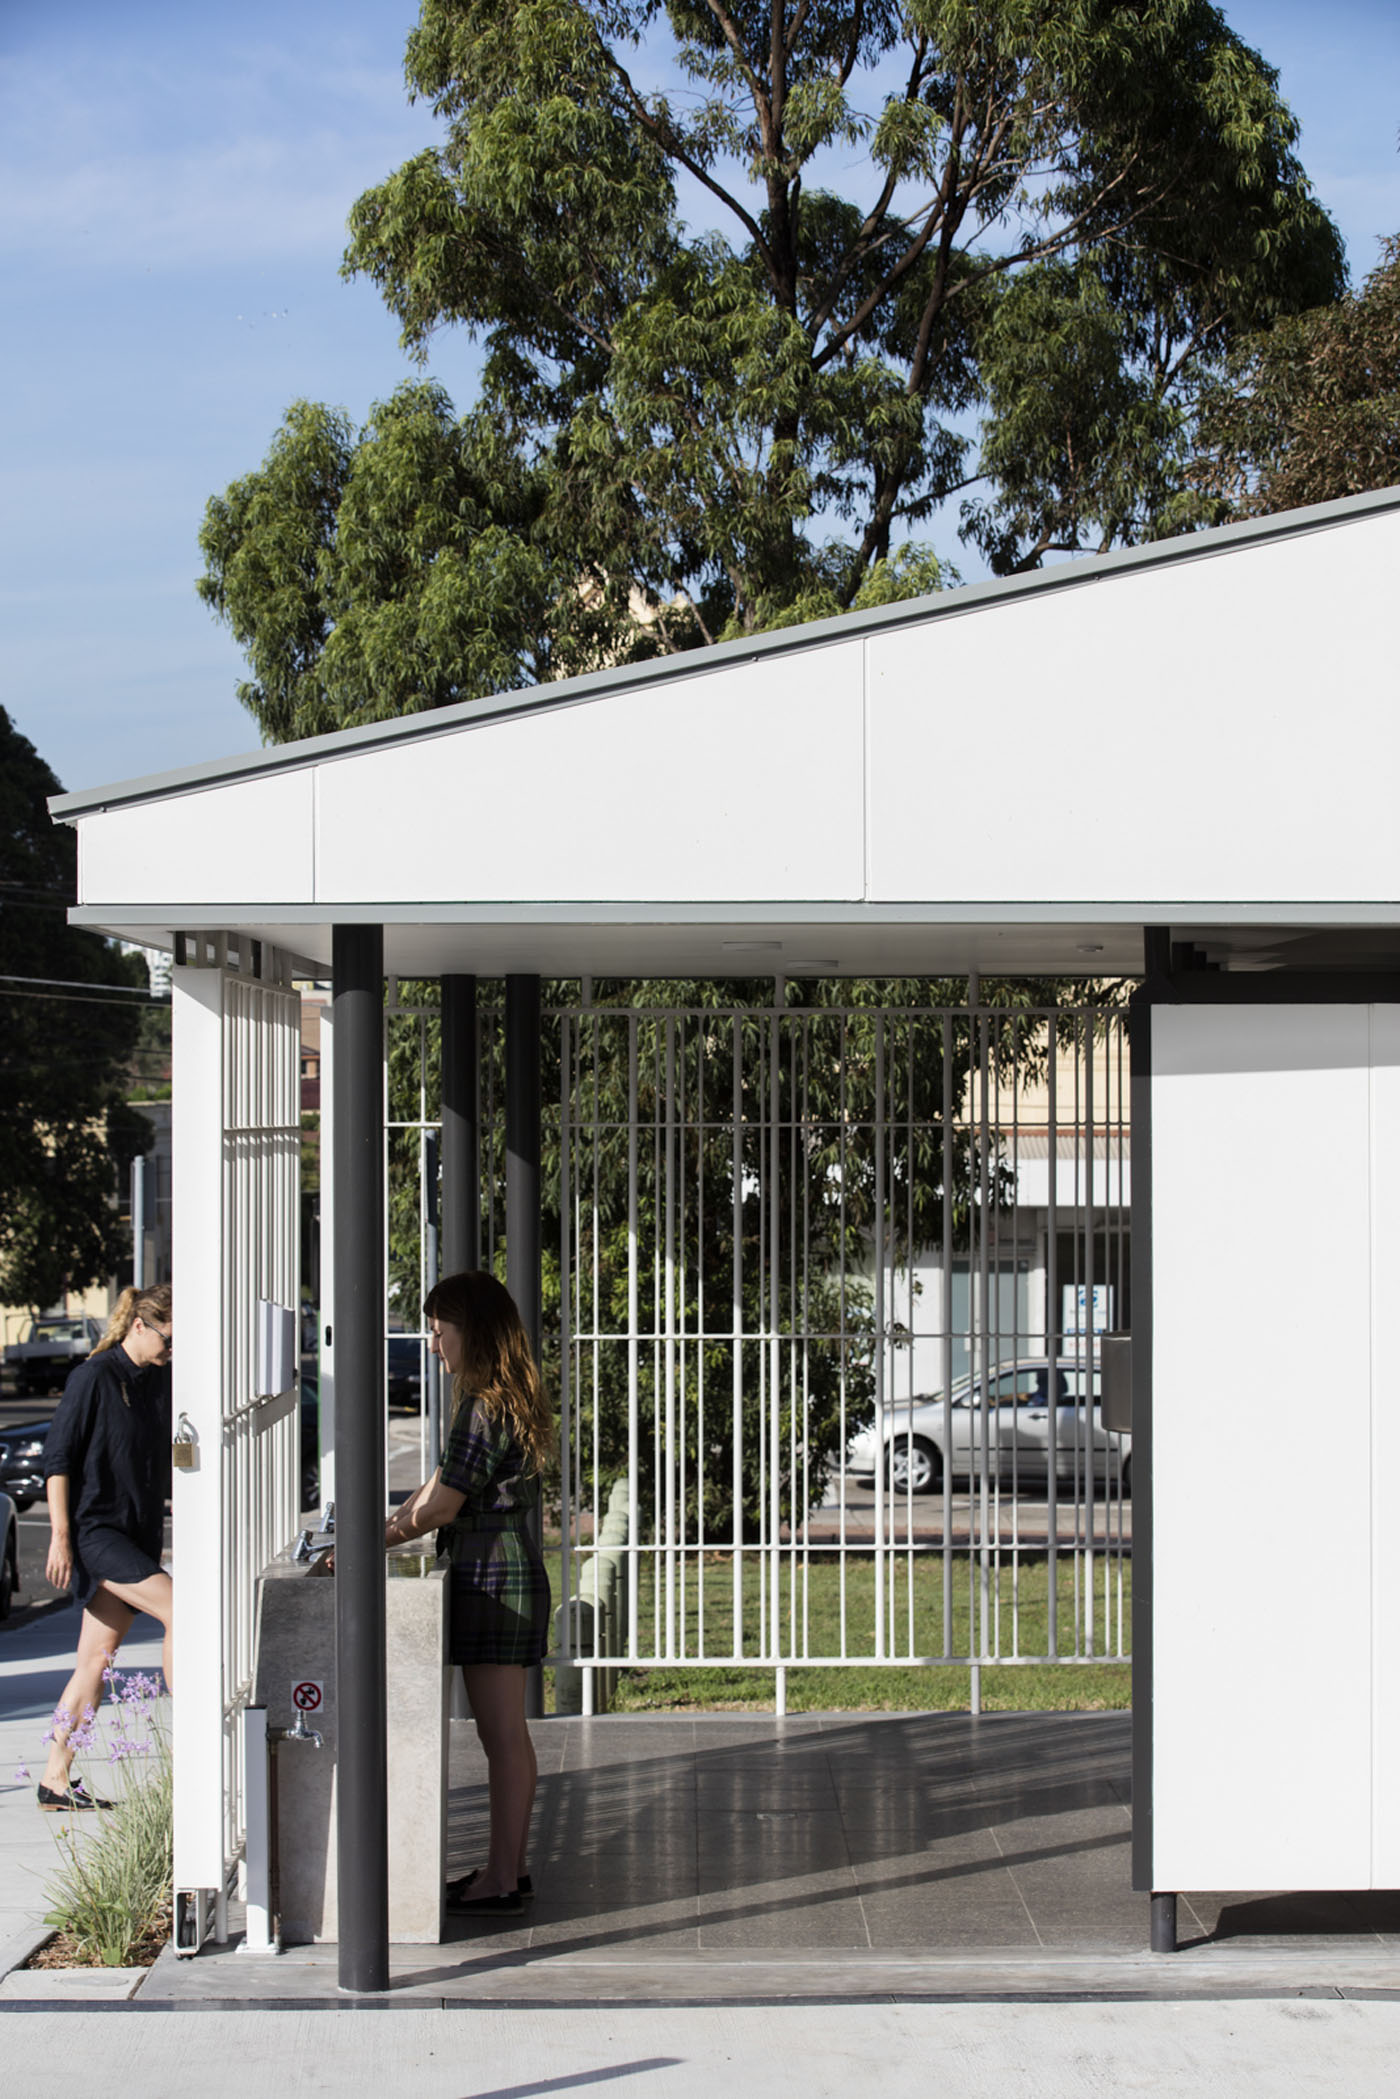 Sydenham Green Amenities by Sam Crawford Architects, Sydney. Safe, clean and accessible.